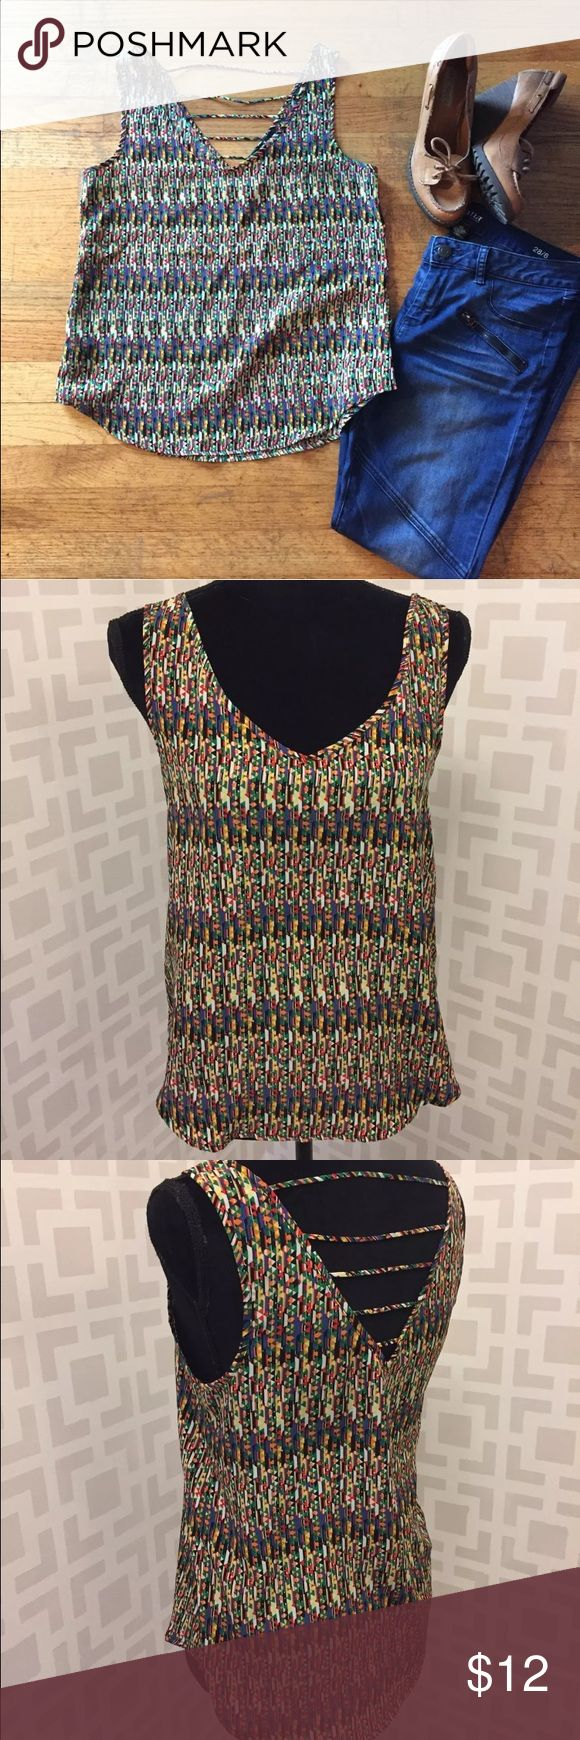 Forever 21 Aztec Strappy back Tank Blouse S Excellent condition. Length measures 24.25 inches. Pit to pit measures 17.5 inches. Forever 21 Tops Tank Tops